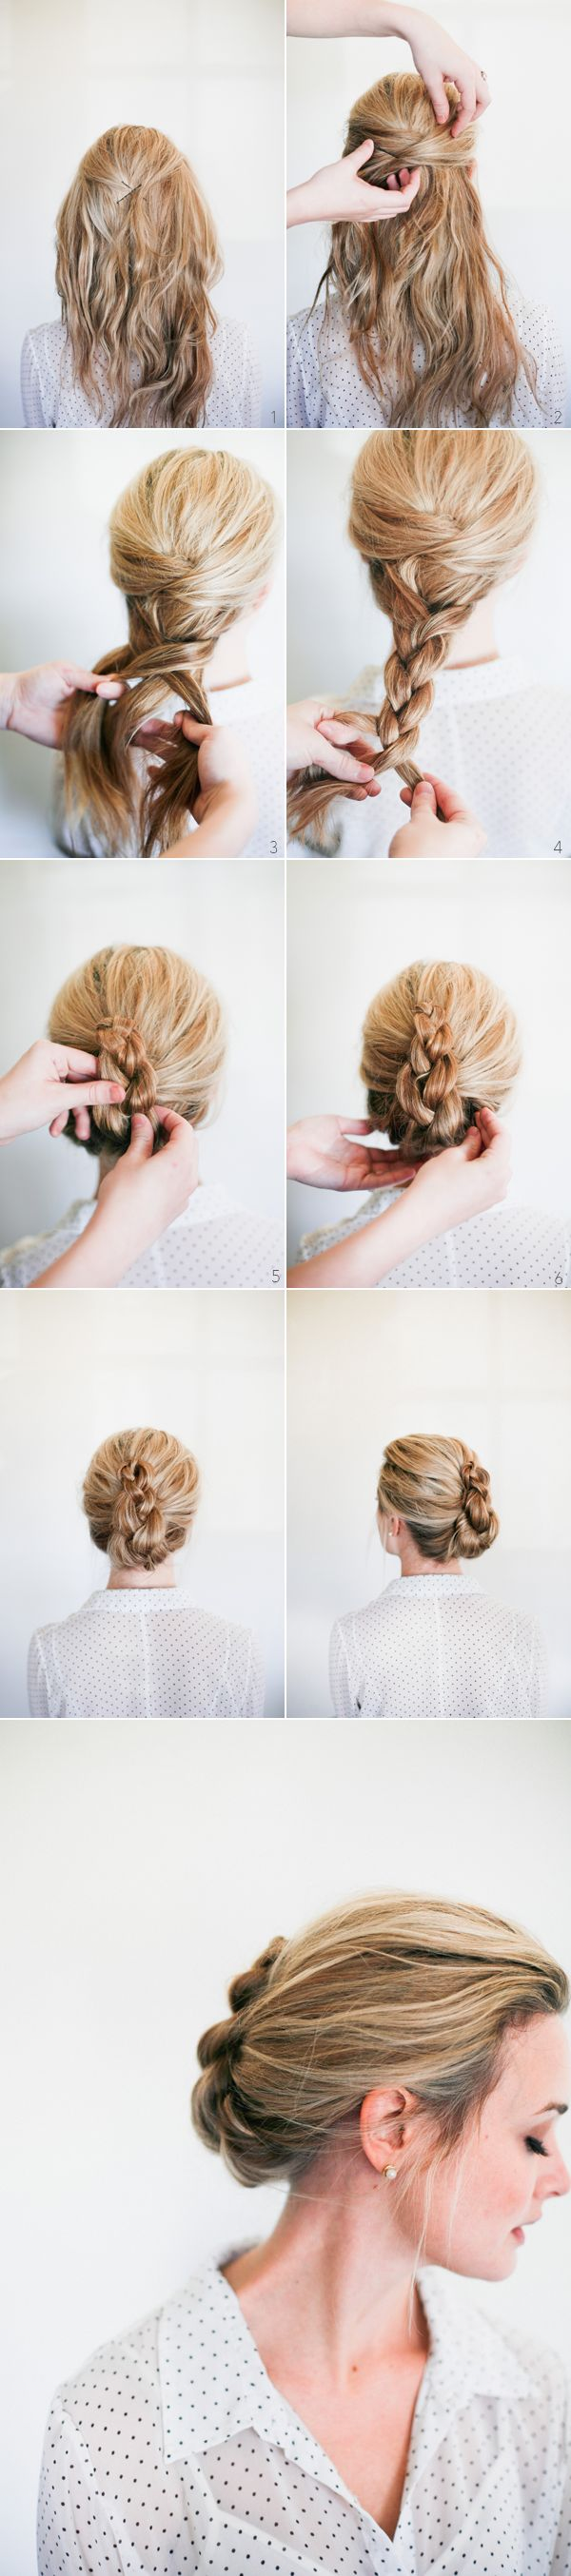 How to - Braided French Twist | DIY Wedding Hairstyle